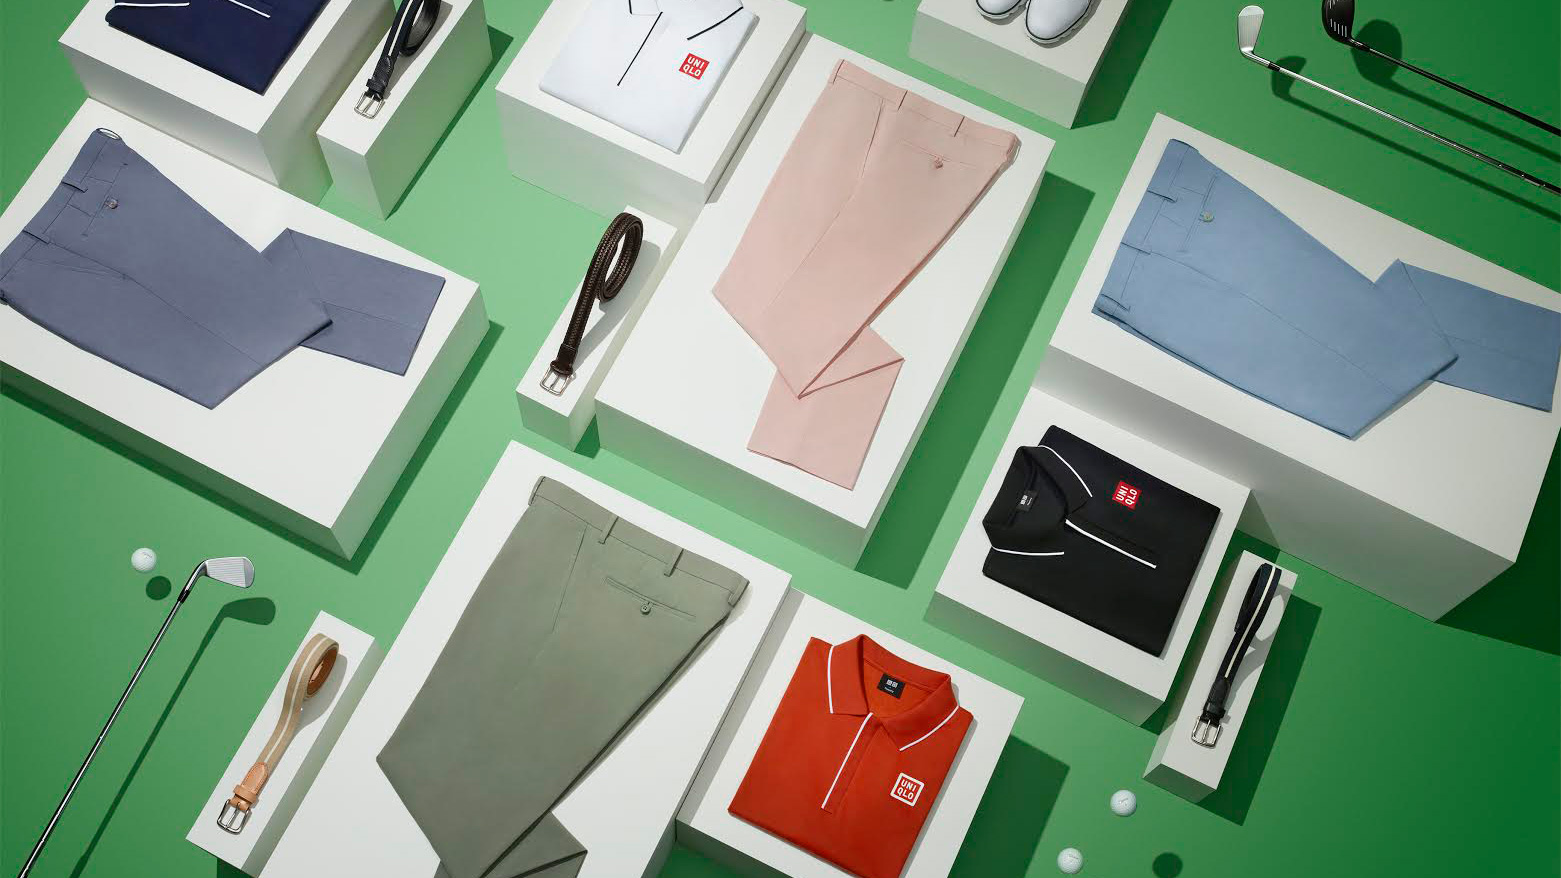 Adam Scott's Uniqlo duds for the U.S. Open at Erin Hills.